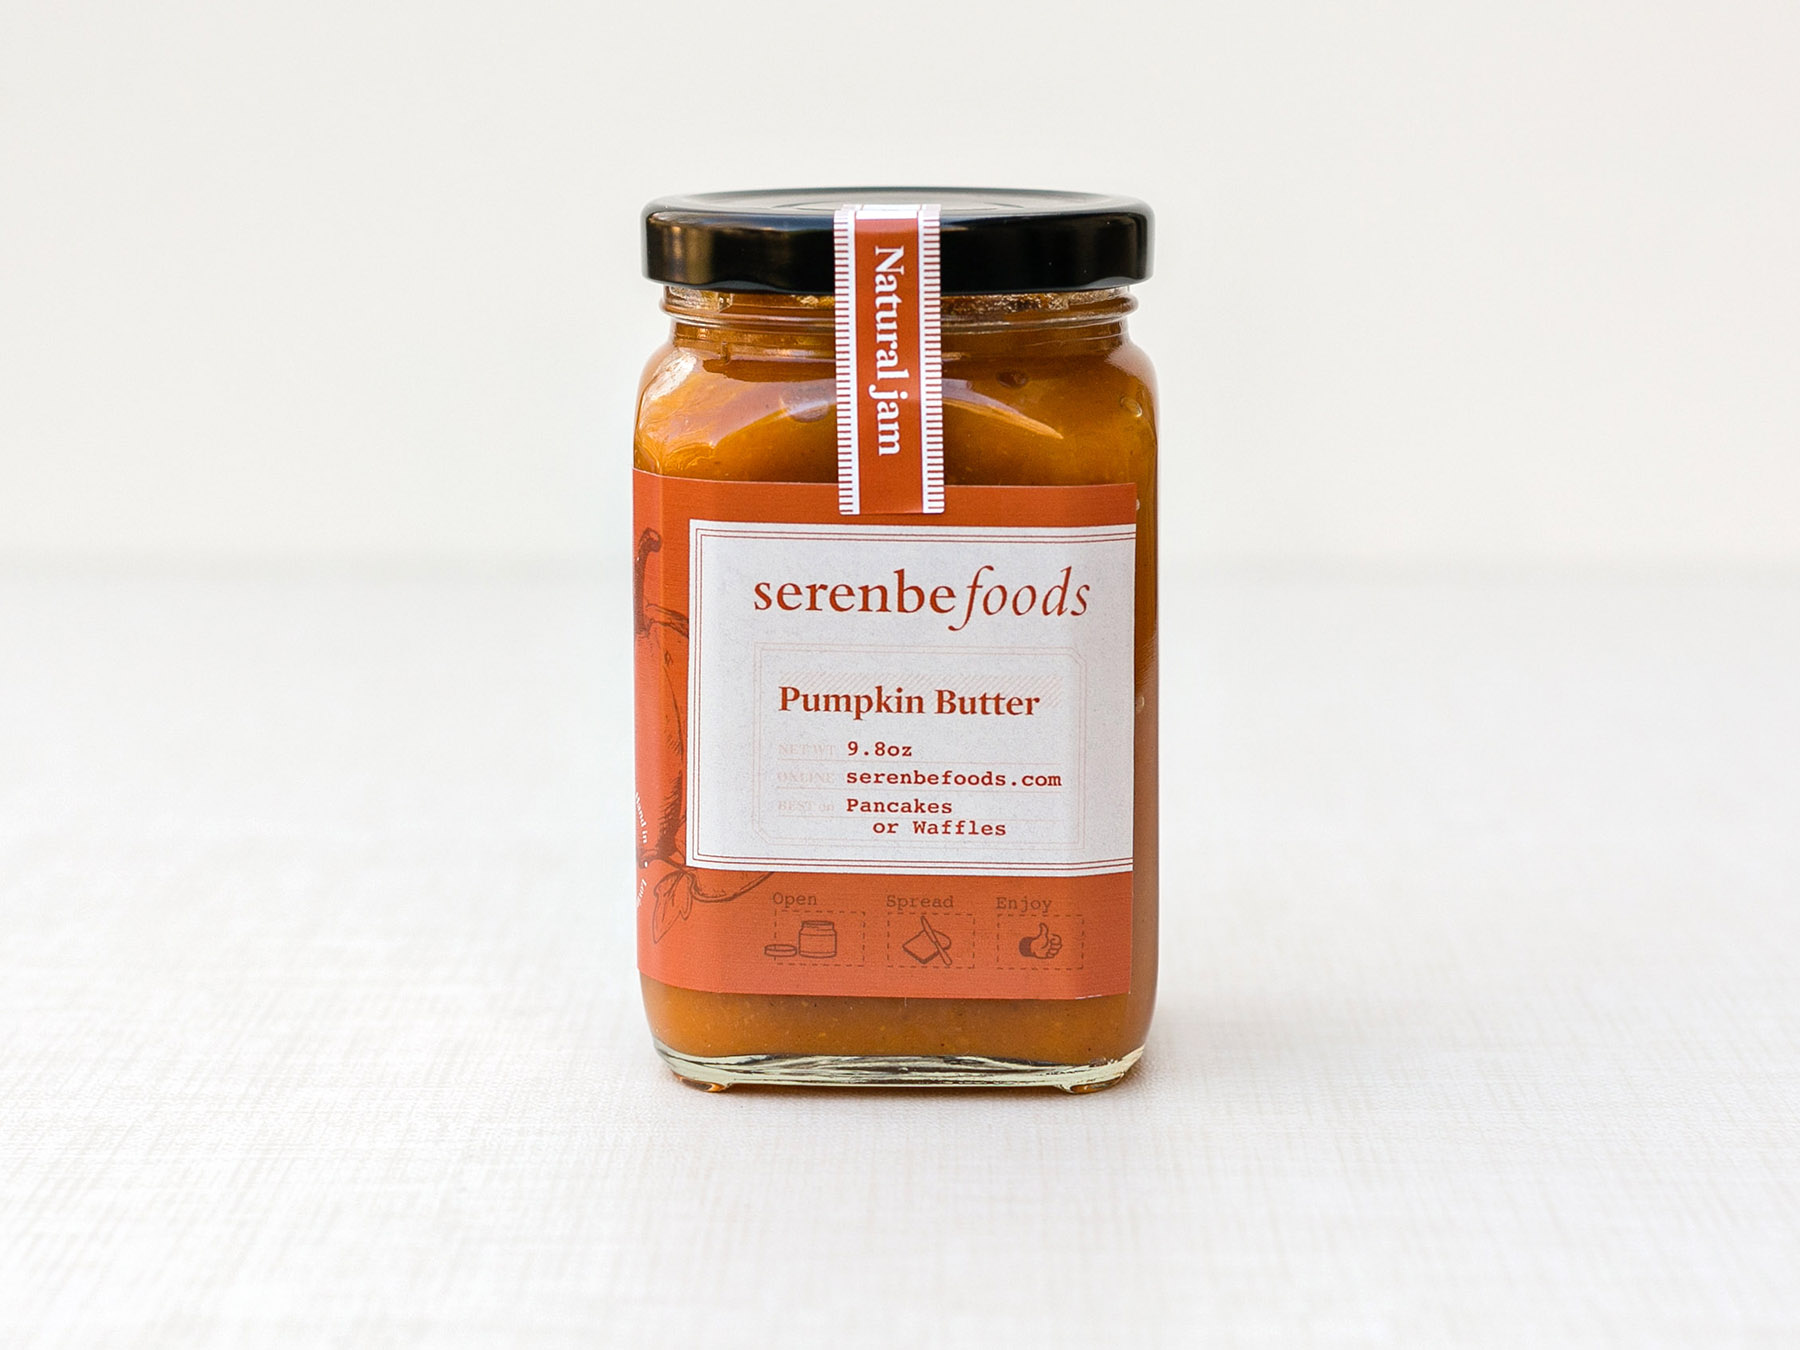 Serenbe Foods pumpkin butter jam jar label design